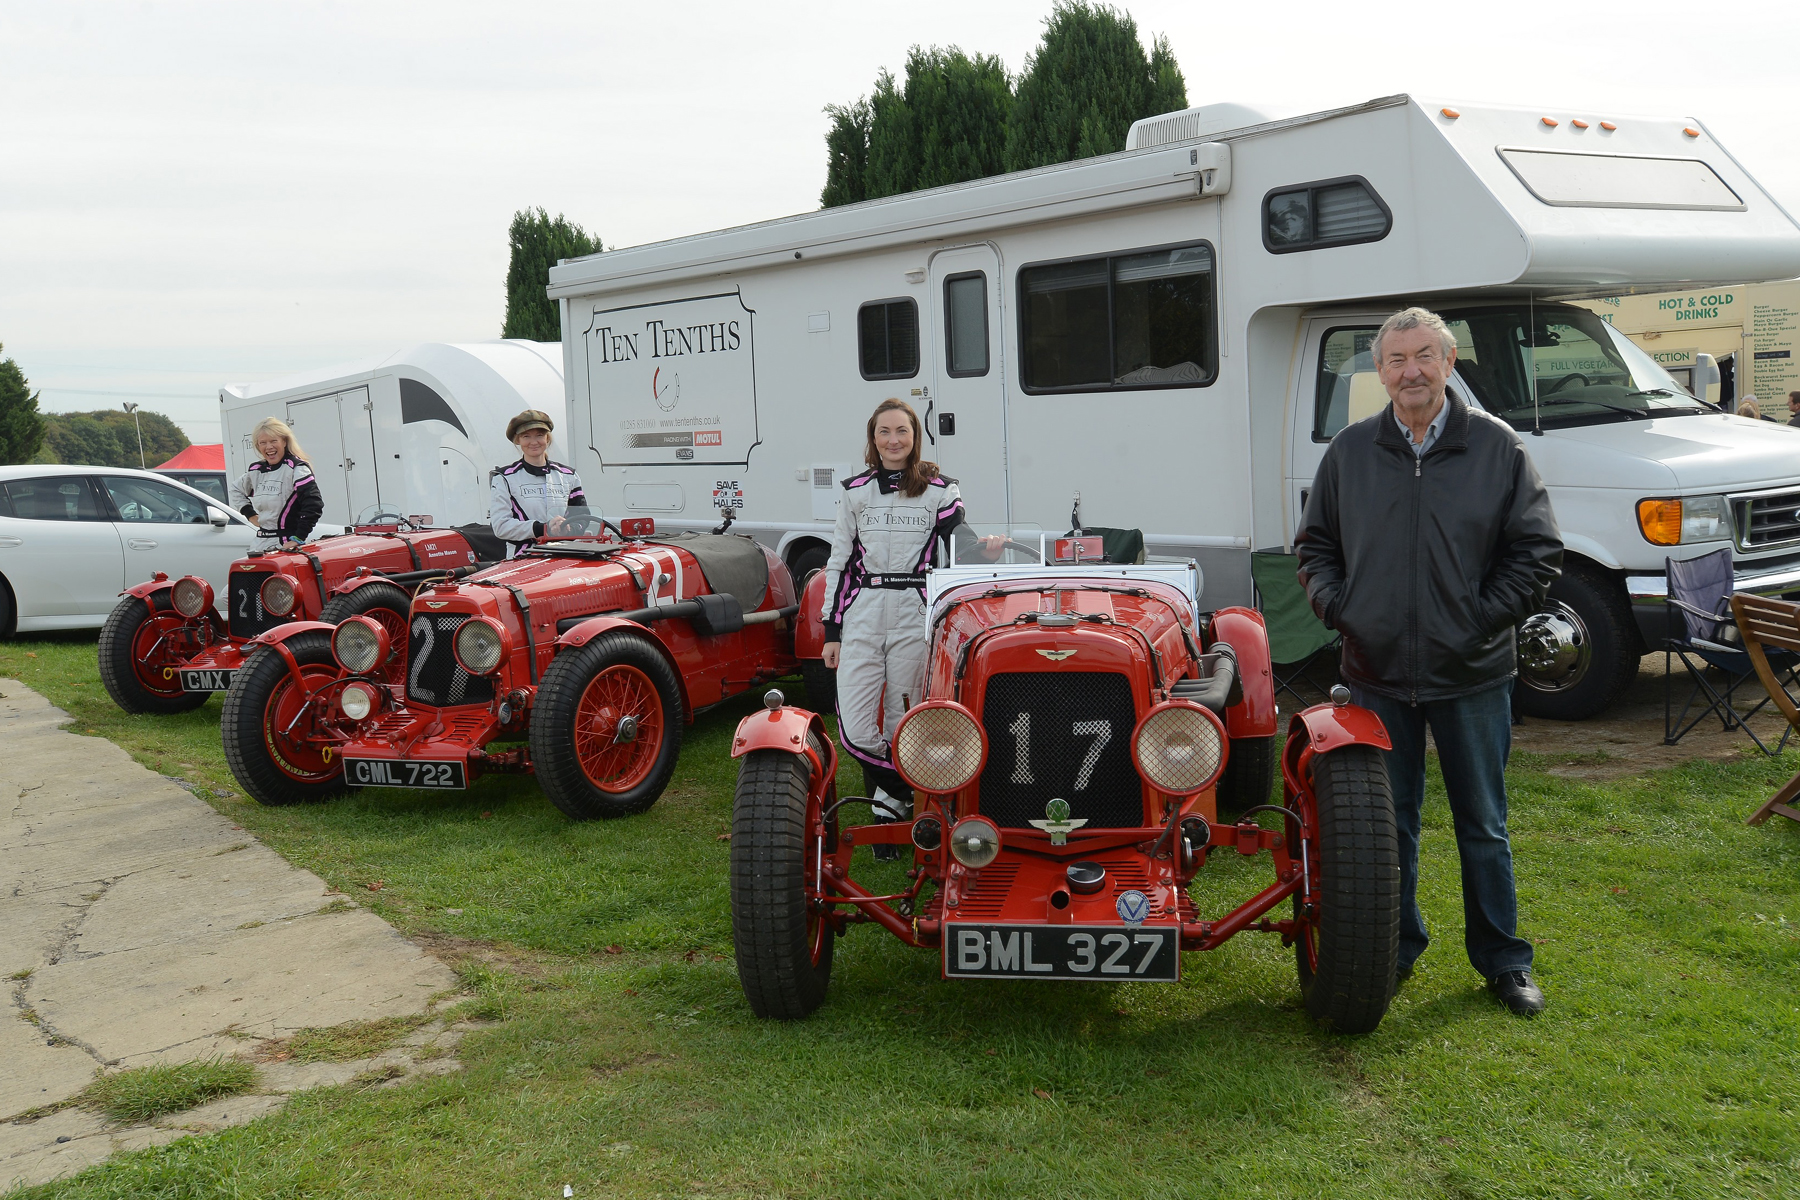 From left to right, Annette (LM21), Chloe (LM18) & Holly (LM17) and a rather well known drummer, racer and writer!   Photo - Ollie Read